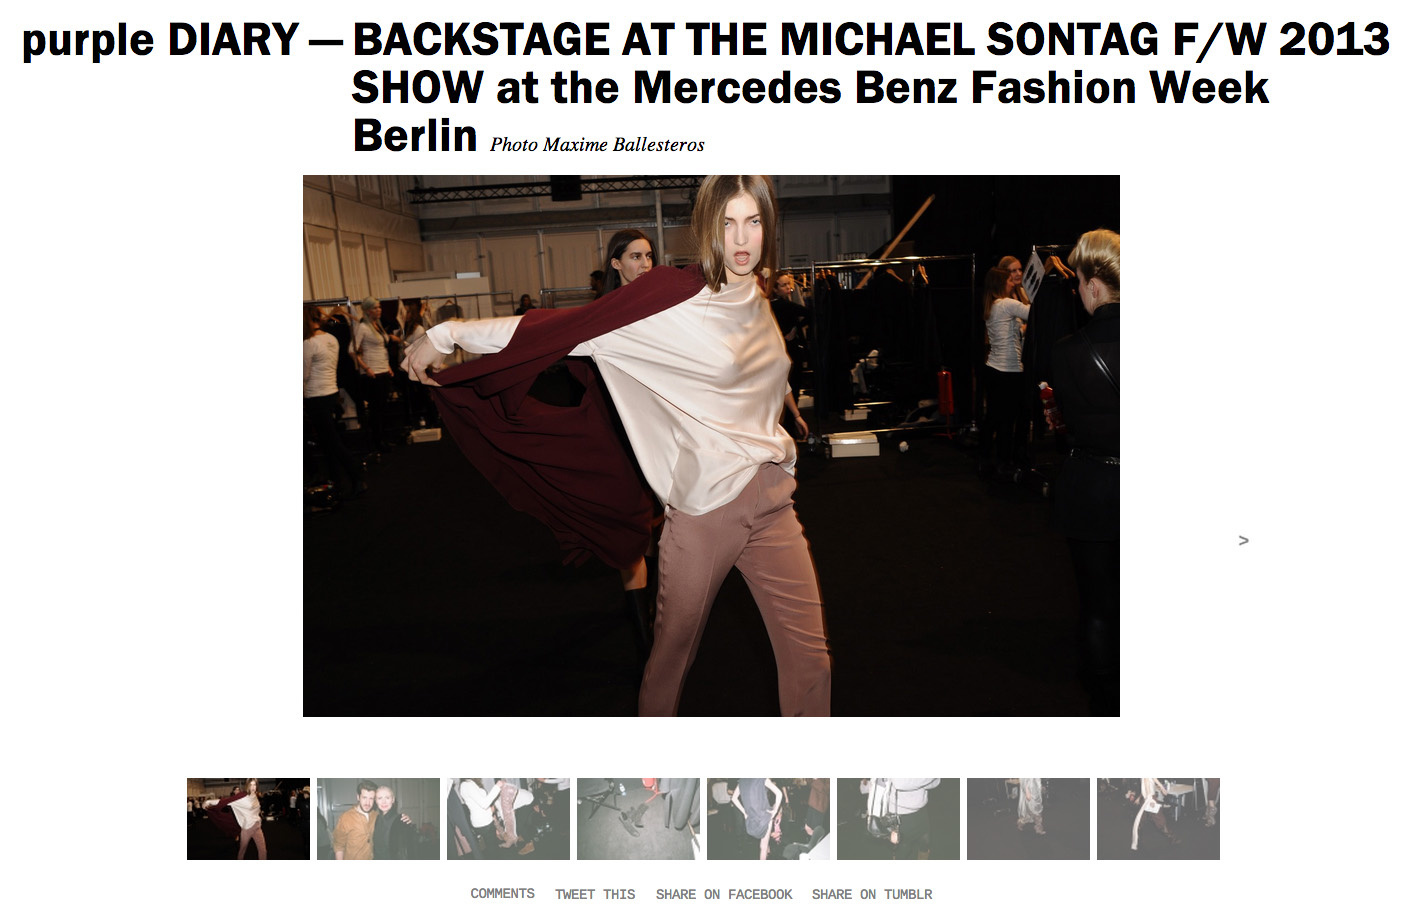 purple DIARY   BACKSTAGE AT THE MICHAEL SONTAG F W 2013 SHOW at the Mercedes Benz Fashion Week Berli